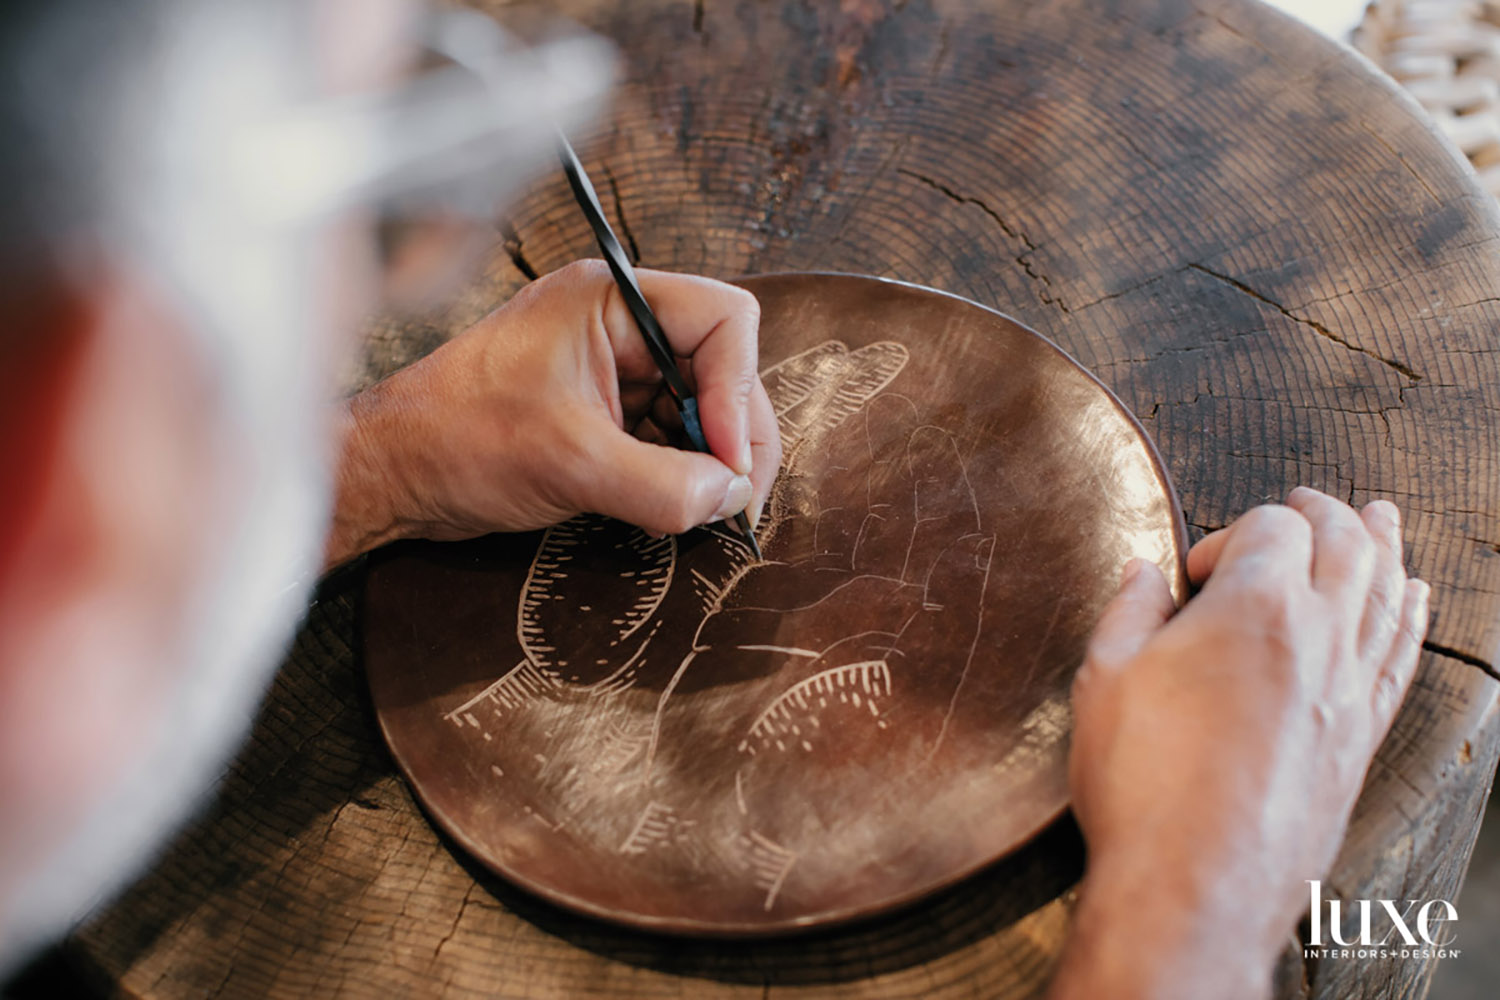 A hand etching a plate